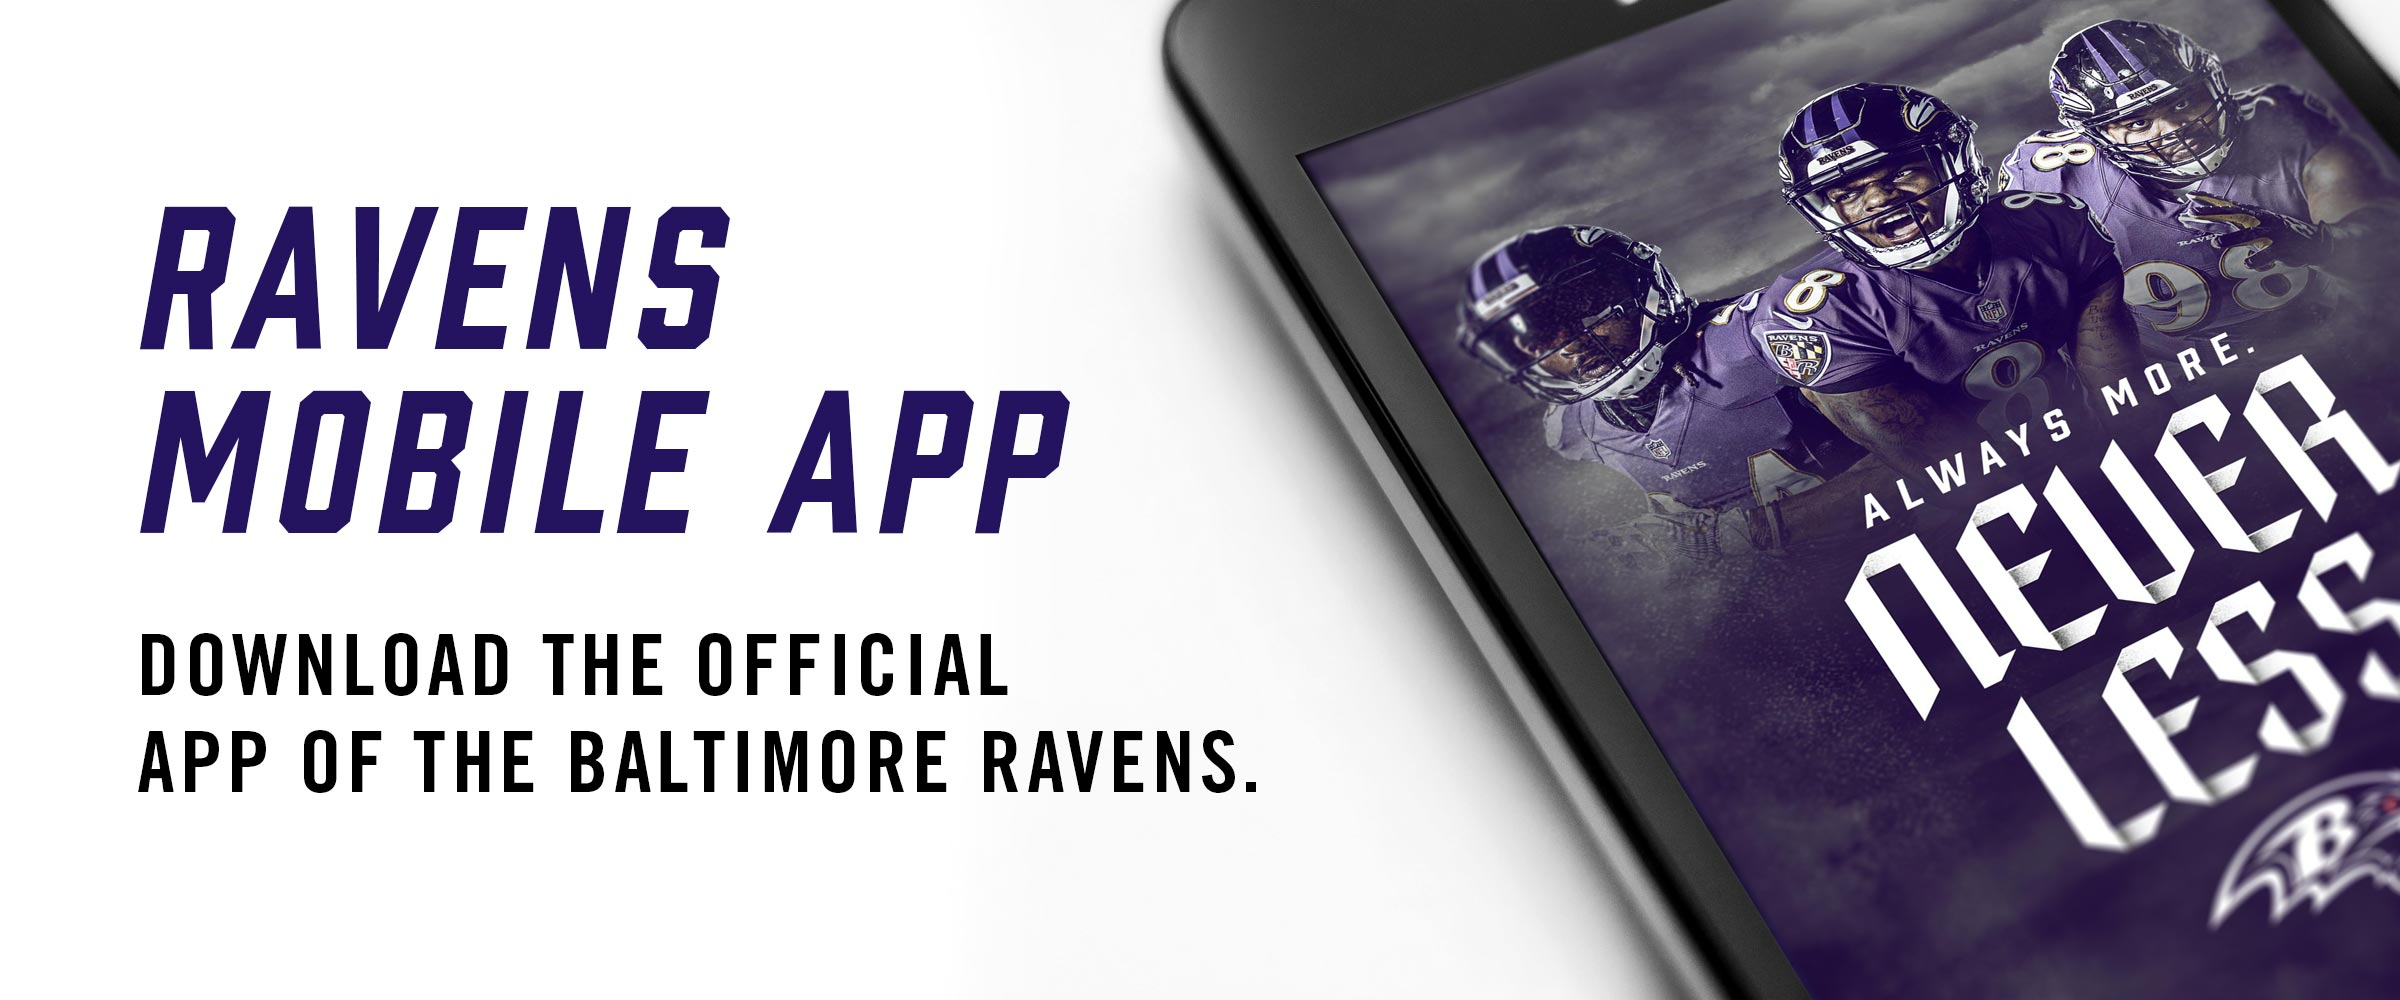 baltimore ravens official mobile app